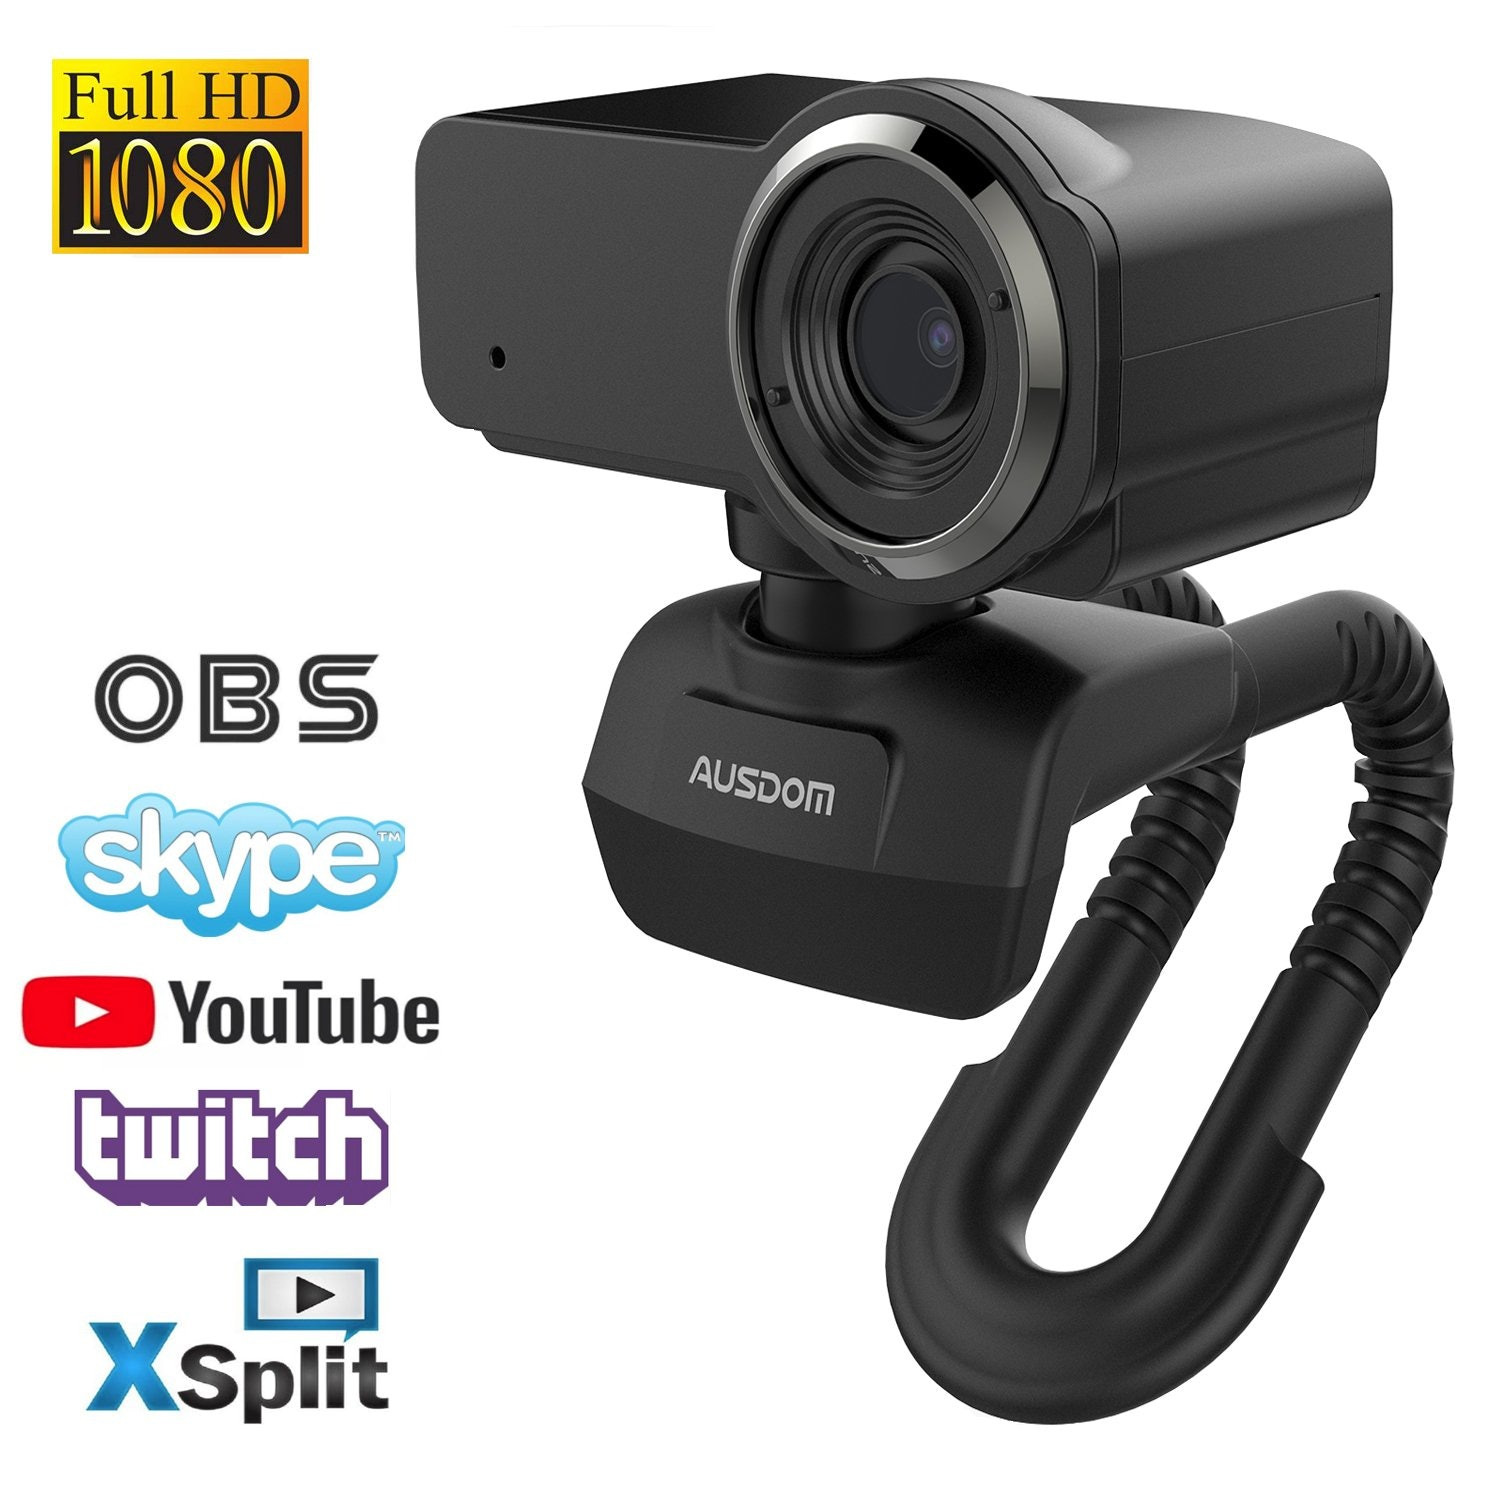 Ausdom Full HD Laptop Webcam, 1080P Streaming Web Camera with Built-in Stereo Microphone, Widescreen Video Calling and Recording Desktop or PC USB Camera for YouTube Xsplit Mixer Skype Twitch OBS